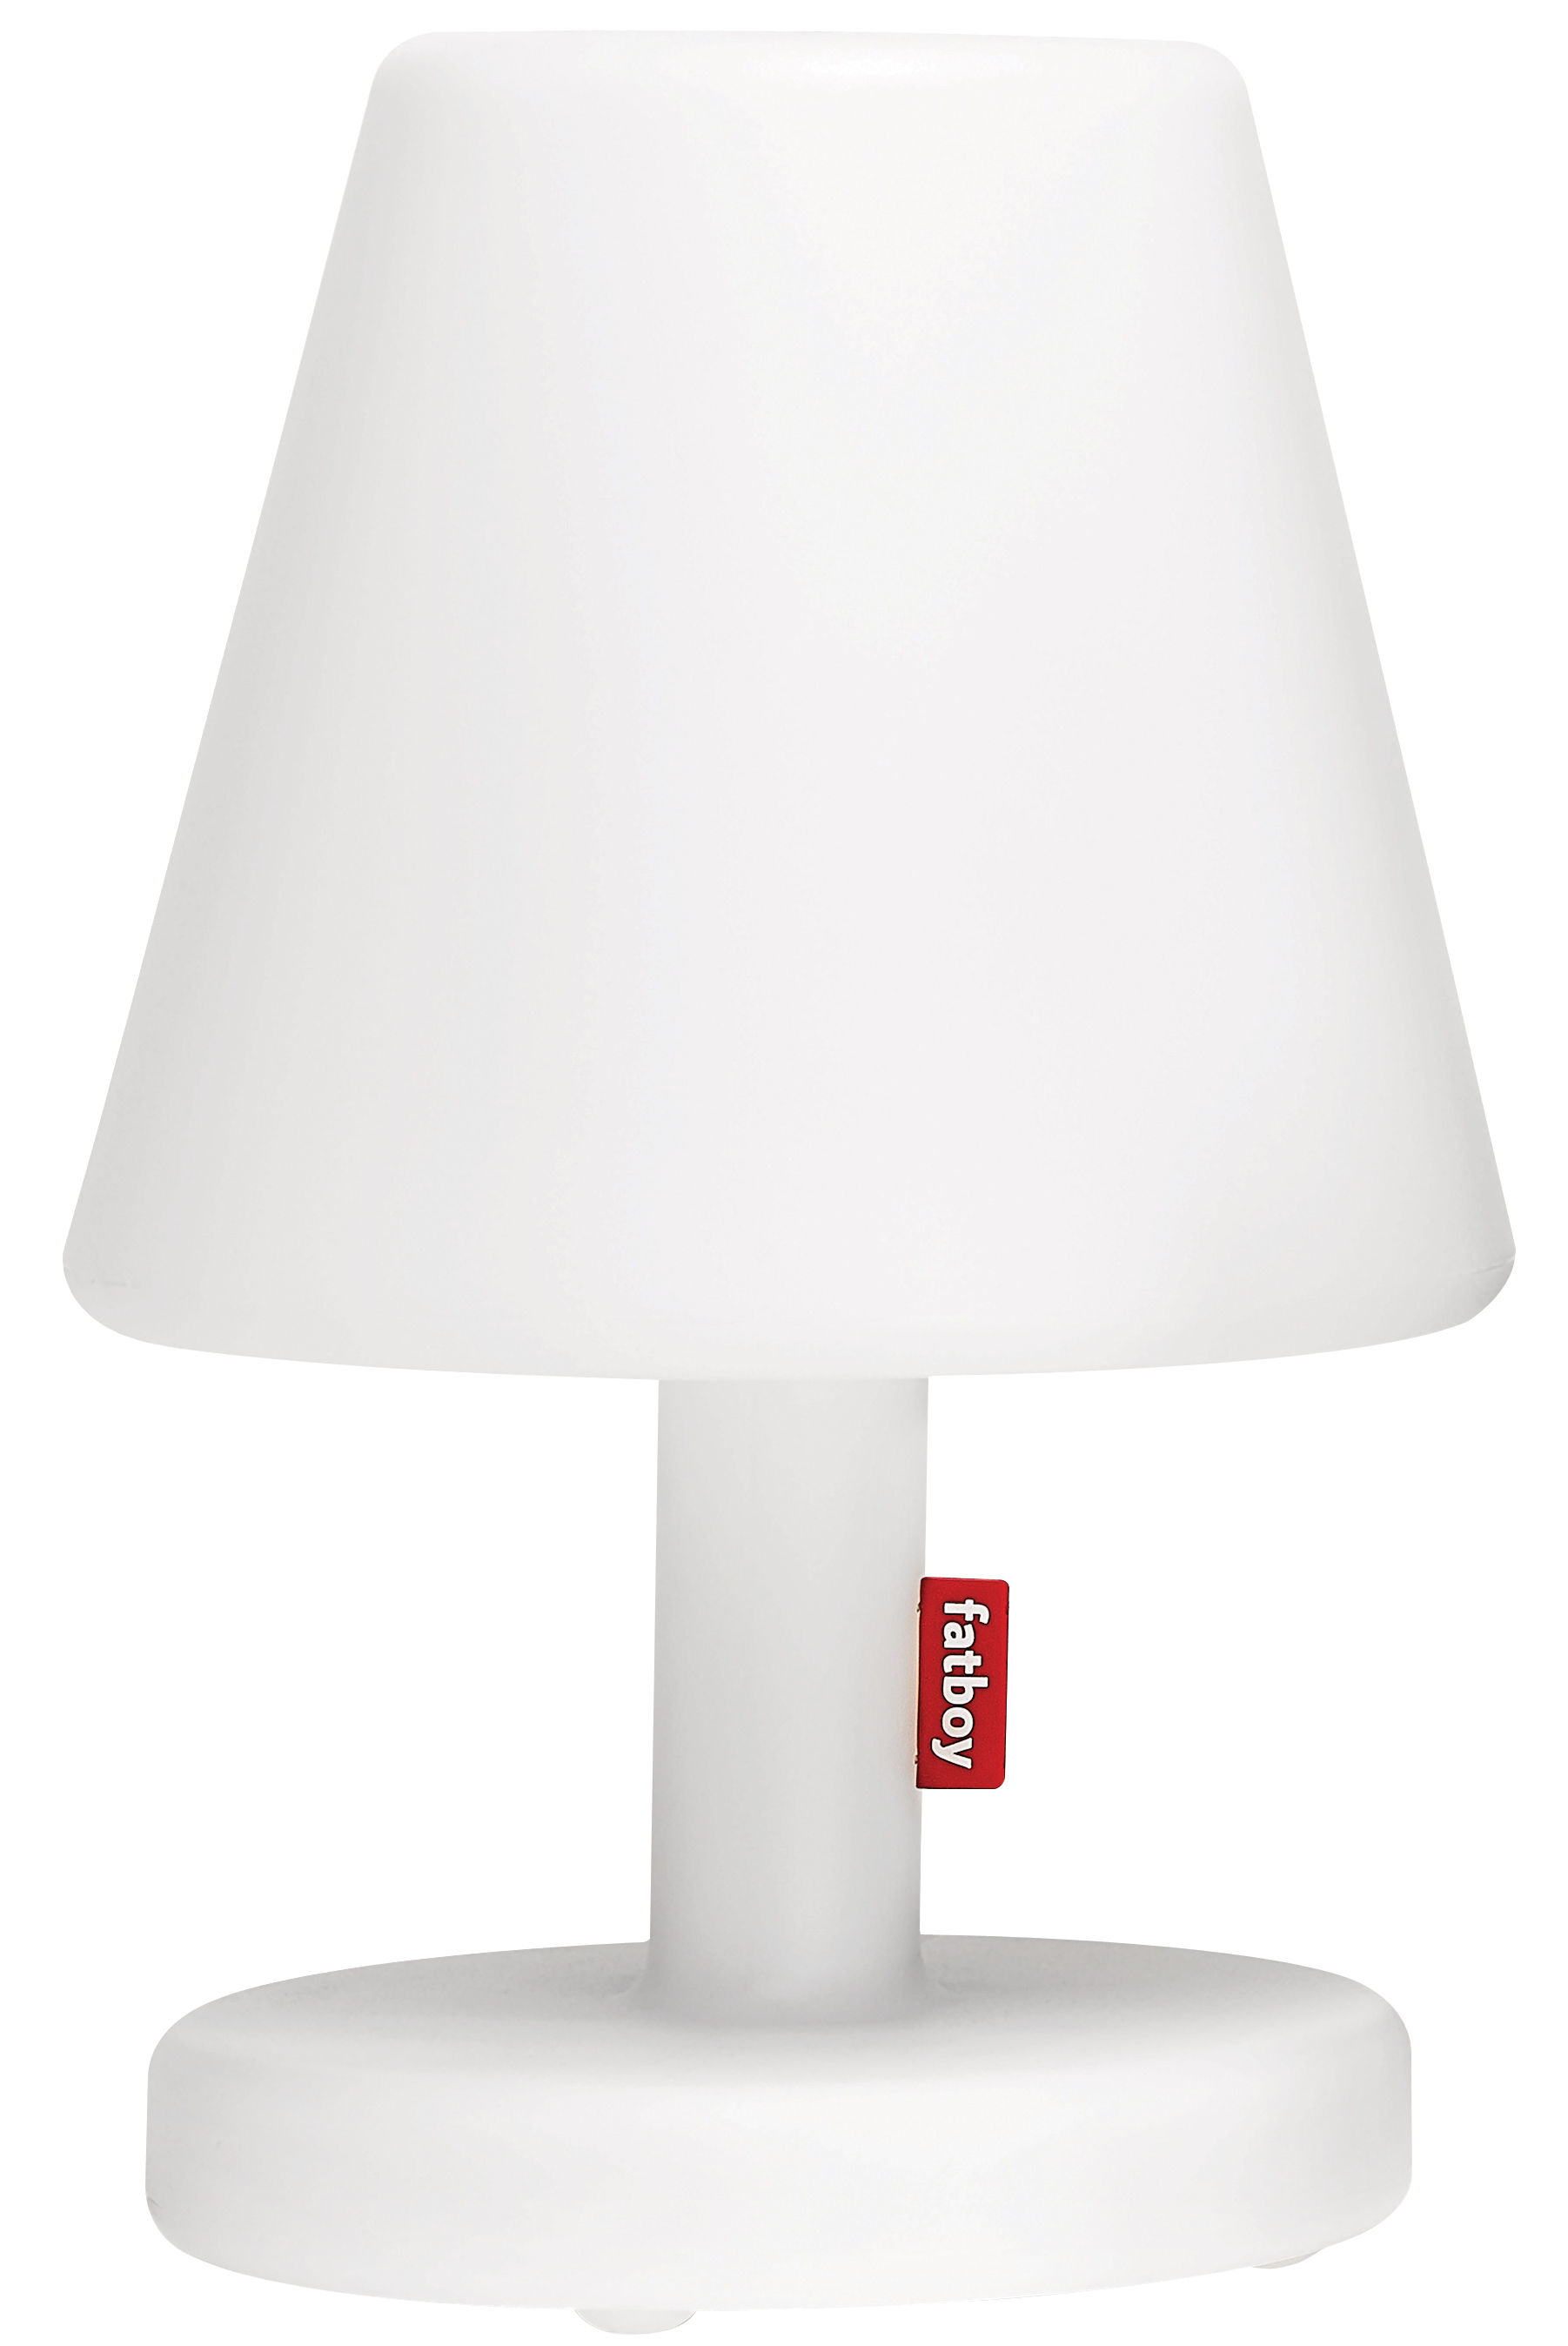 Medium 51 Lampe Led Cm Edison Fatboy The H TZOkXPiu